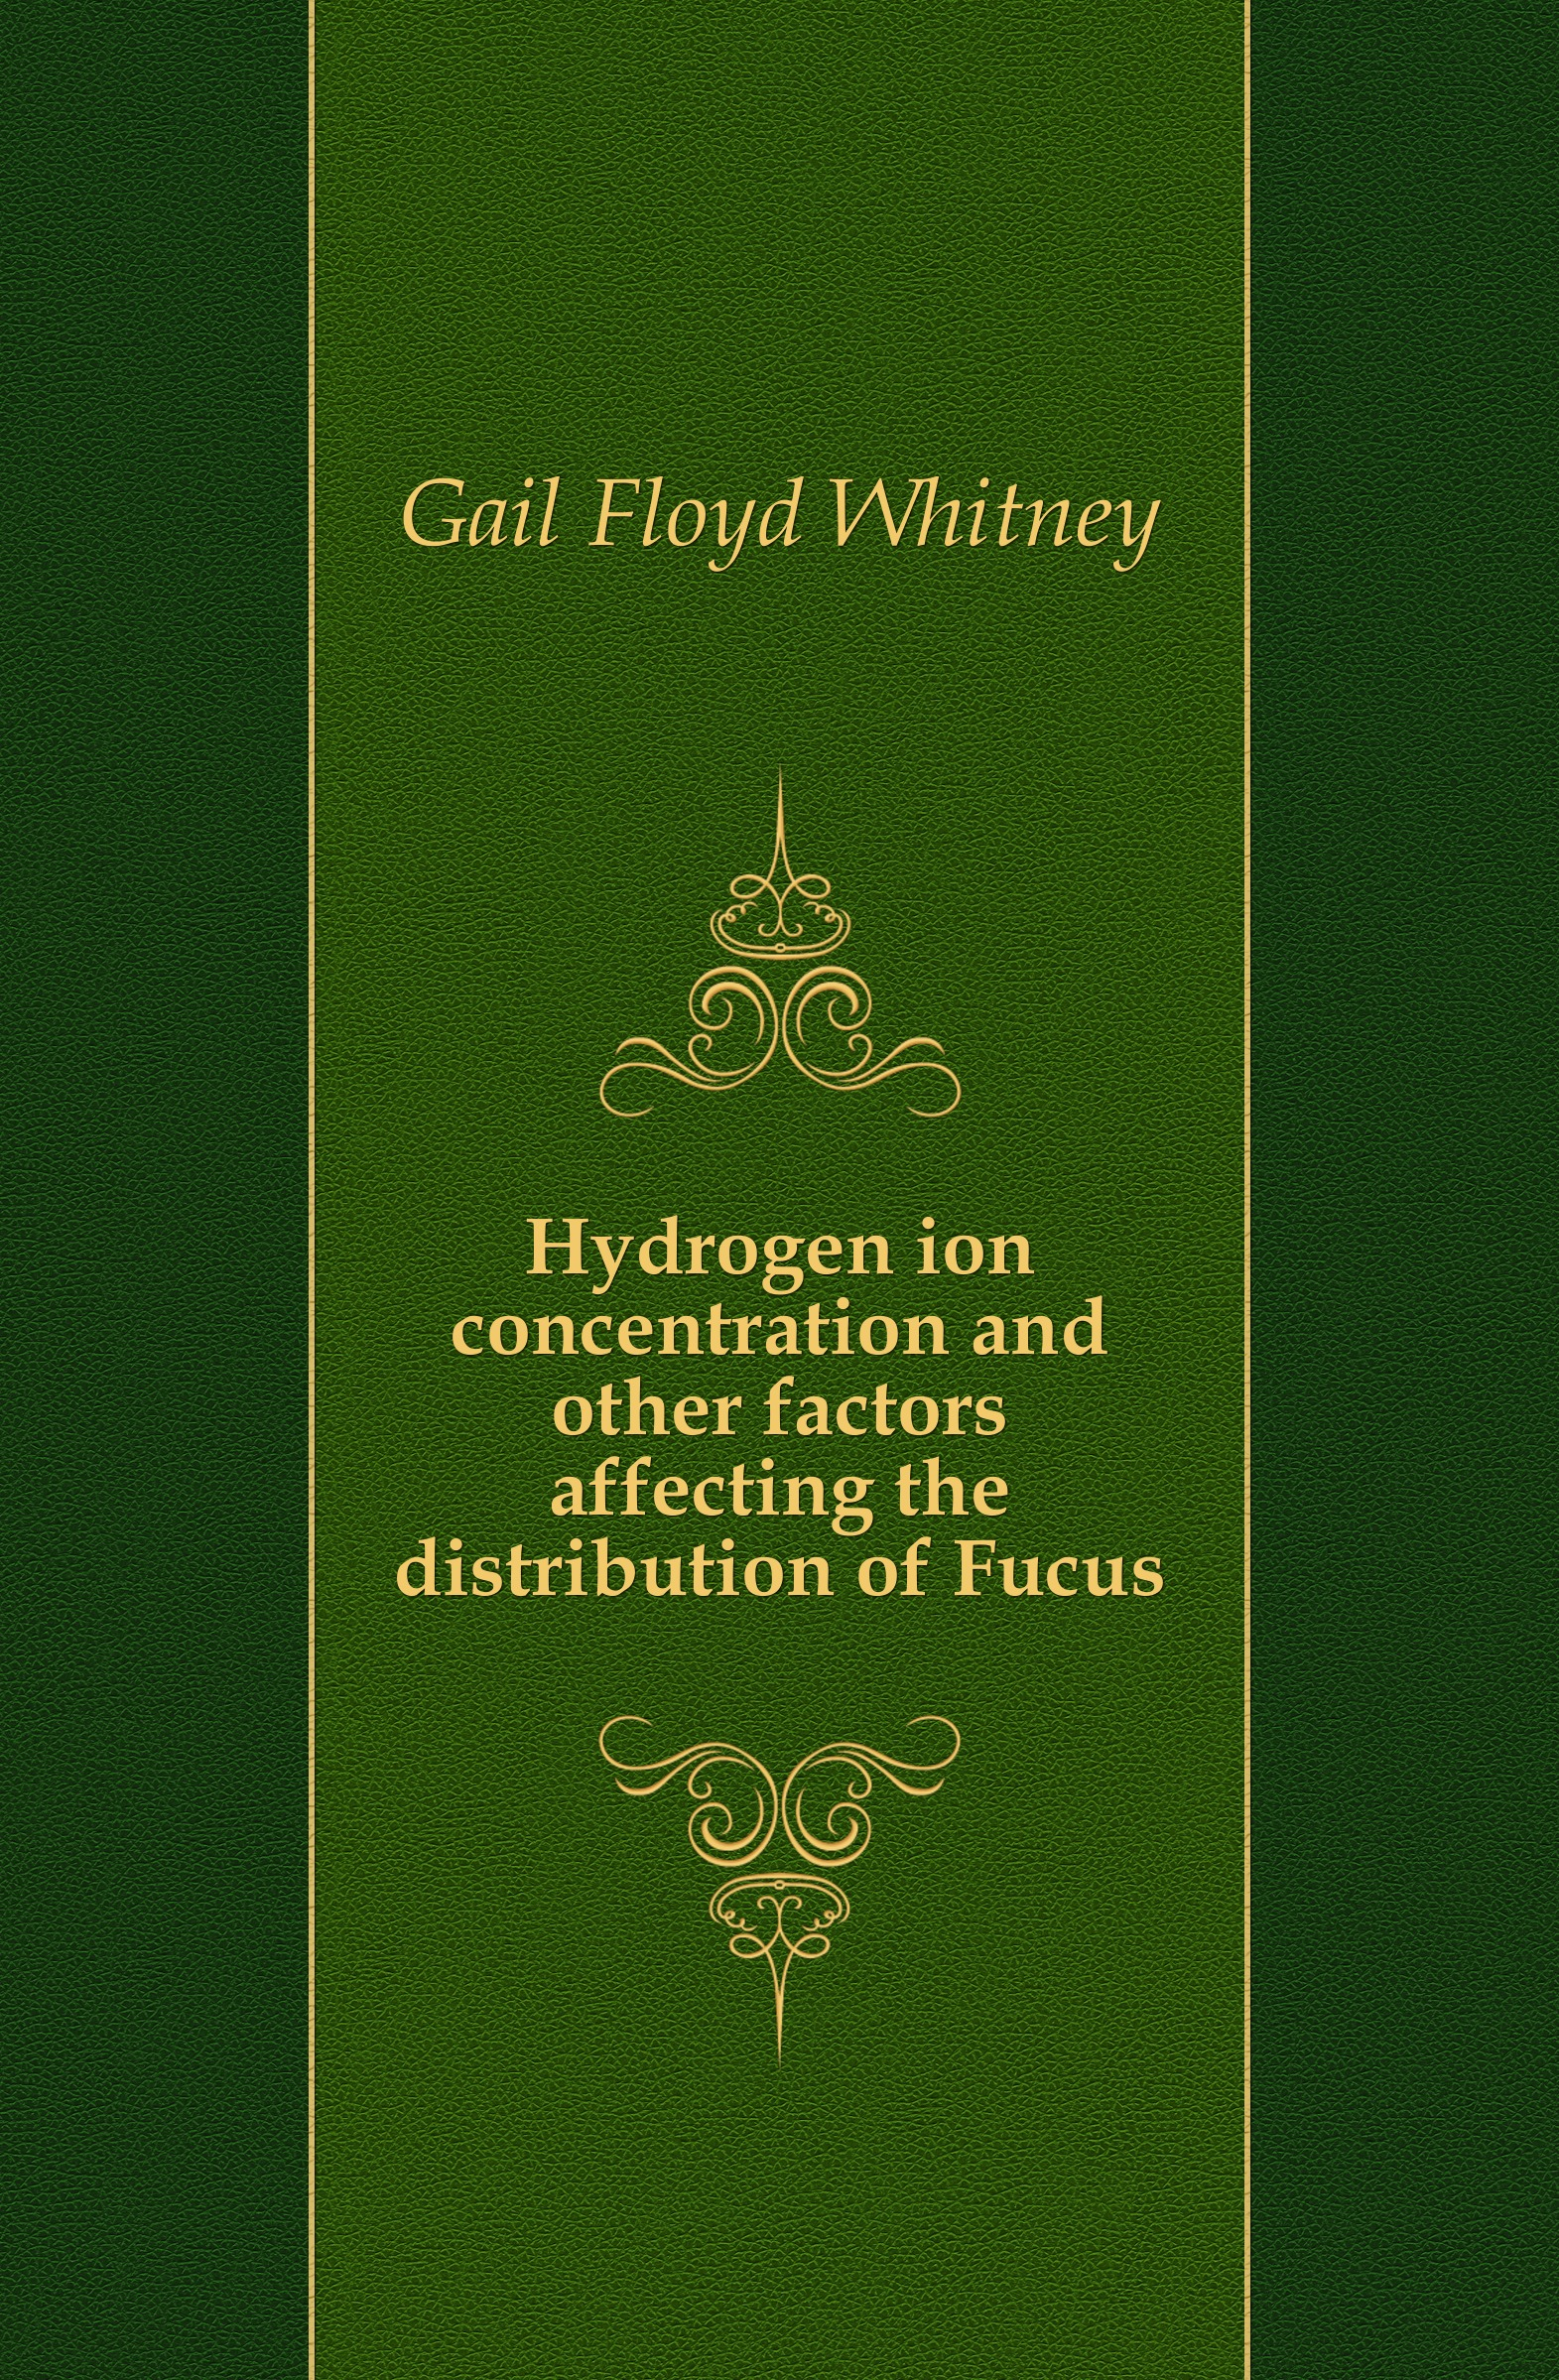 Gail Floyd Whitney Hydrogen ion concentration and other factors affecting the distribution of Fucus stress concentration factors